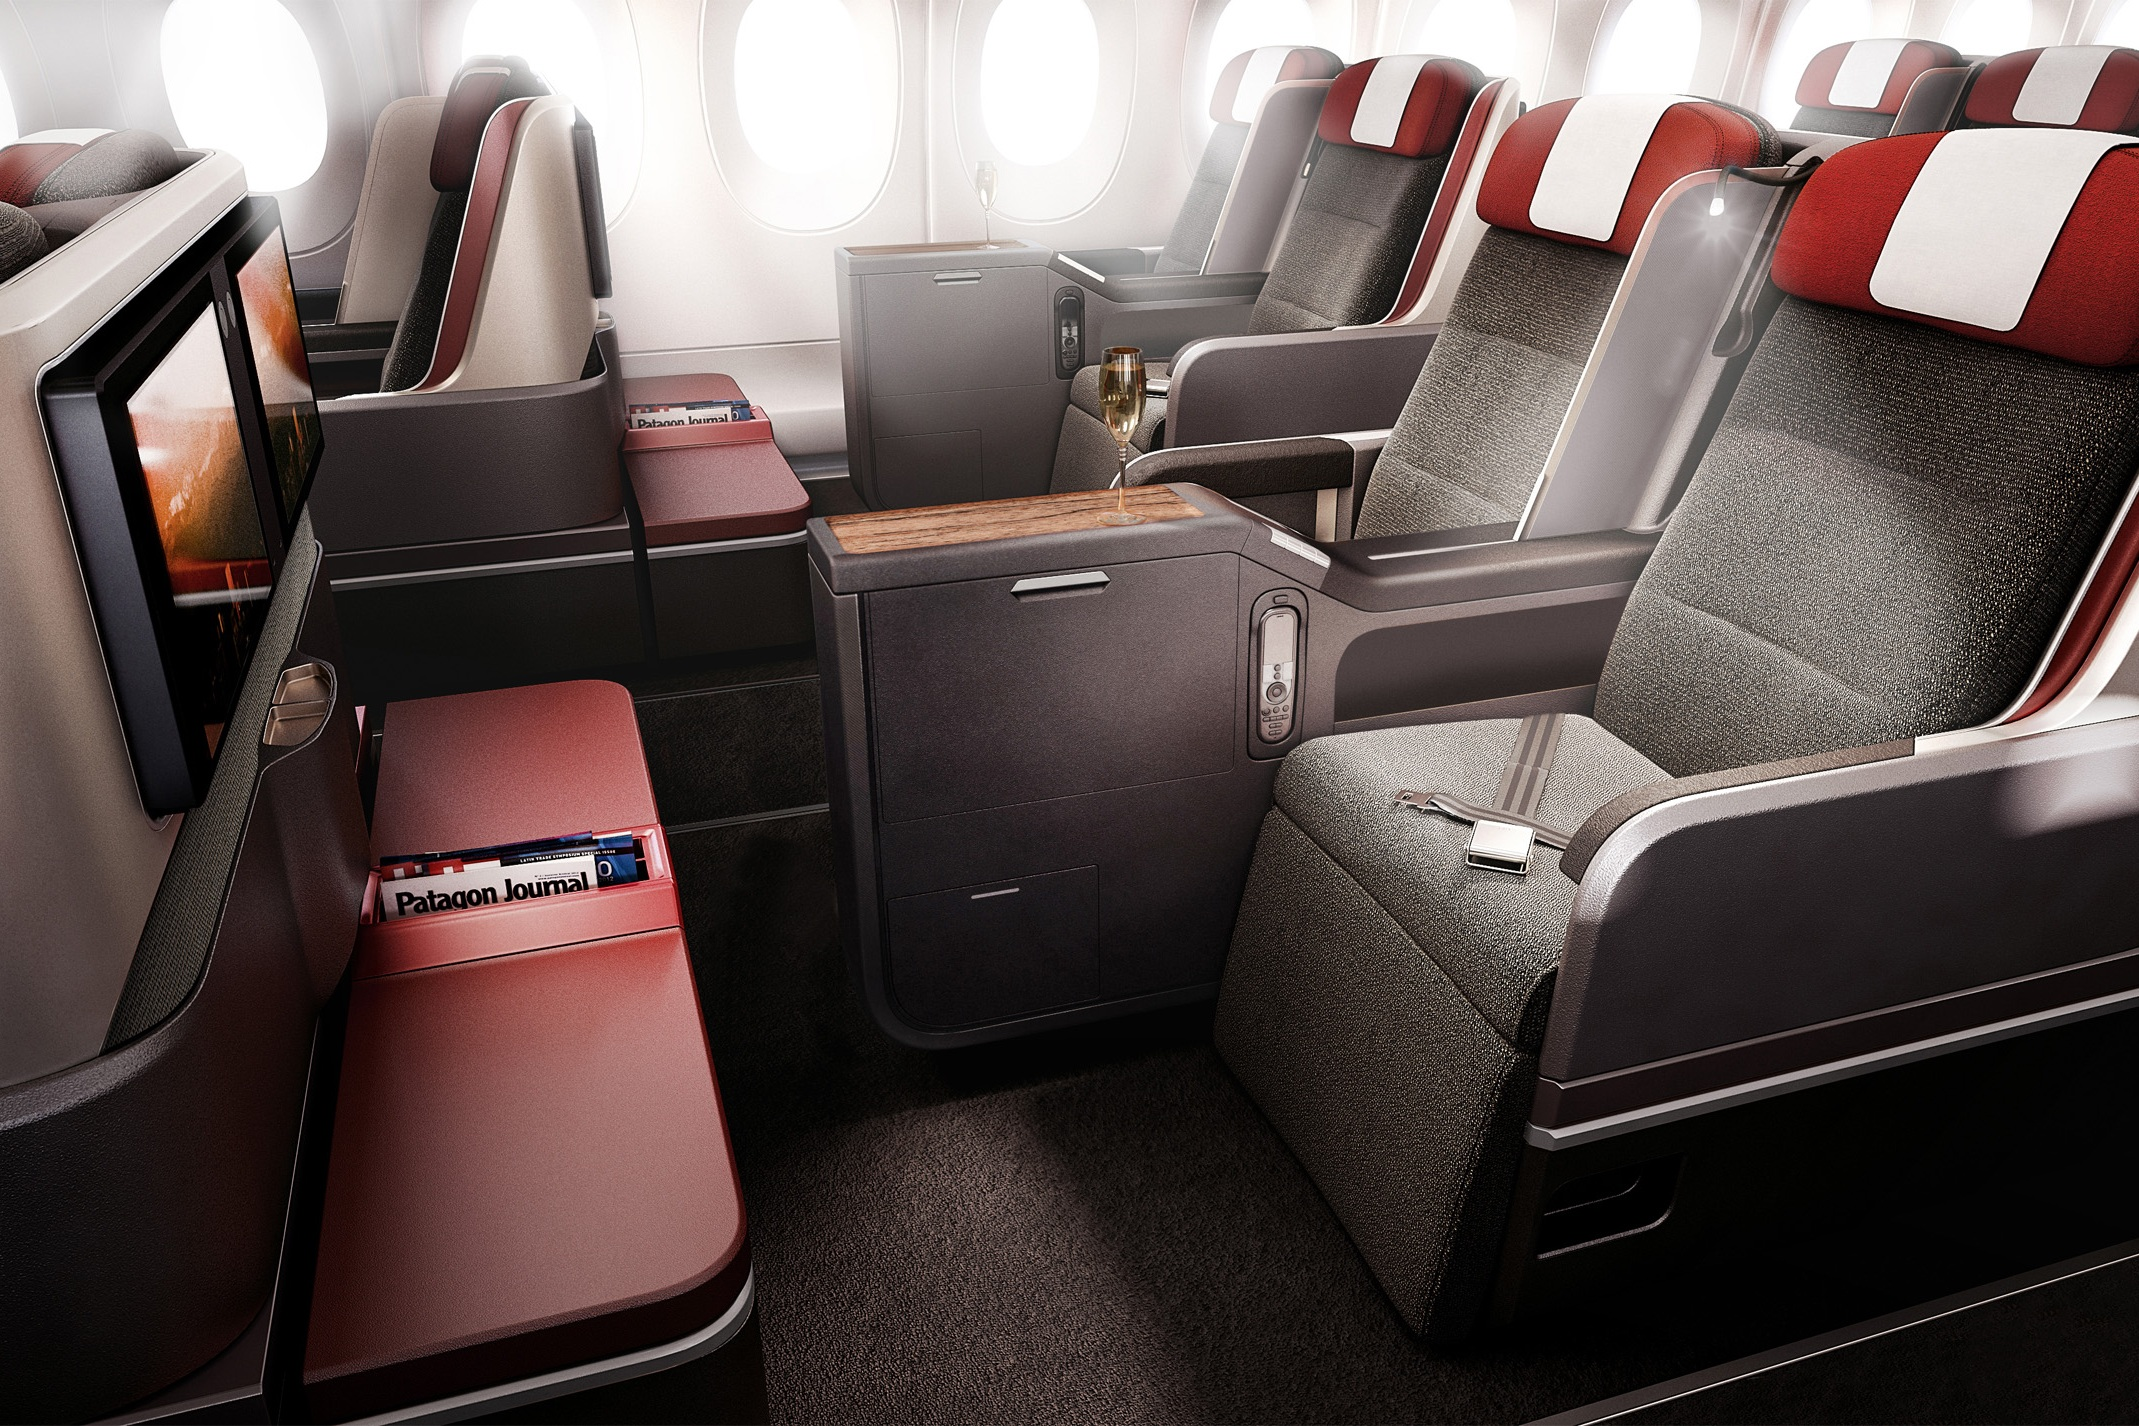 Fly LATAM business class from Australia to New Zealand